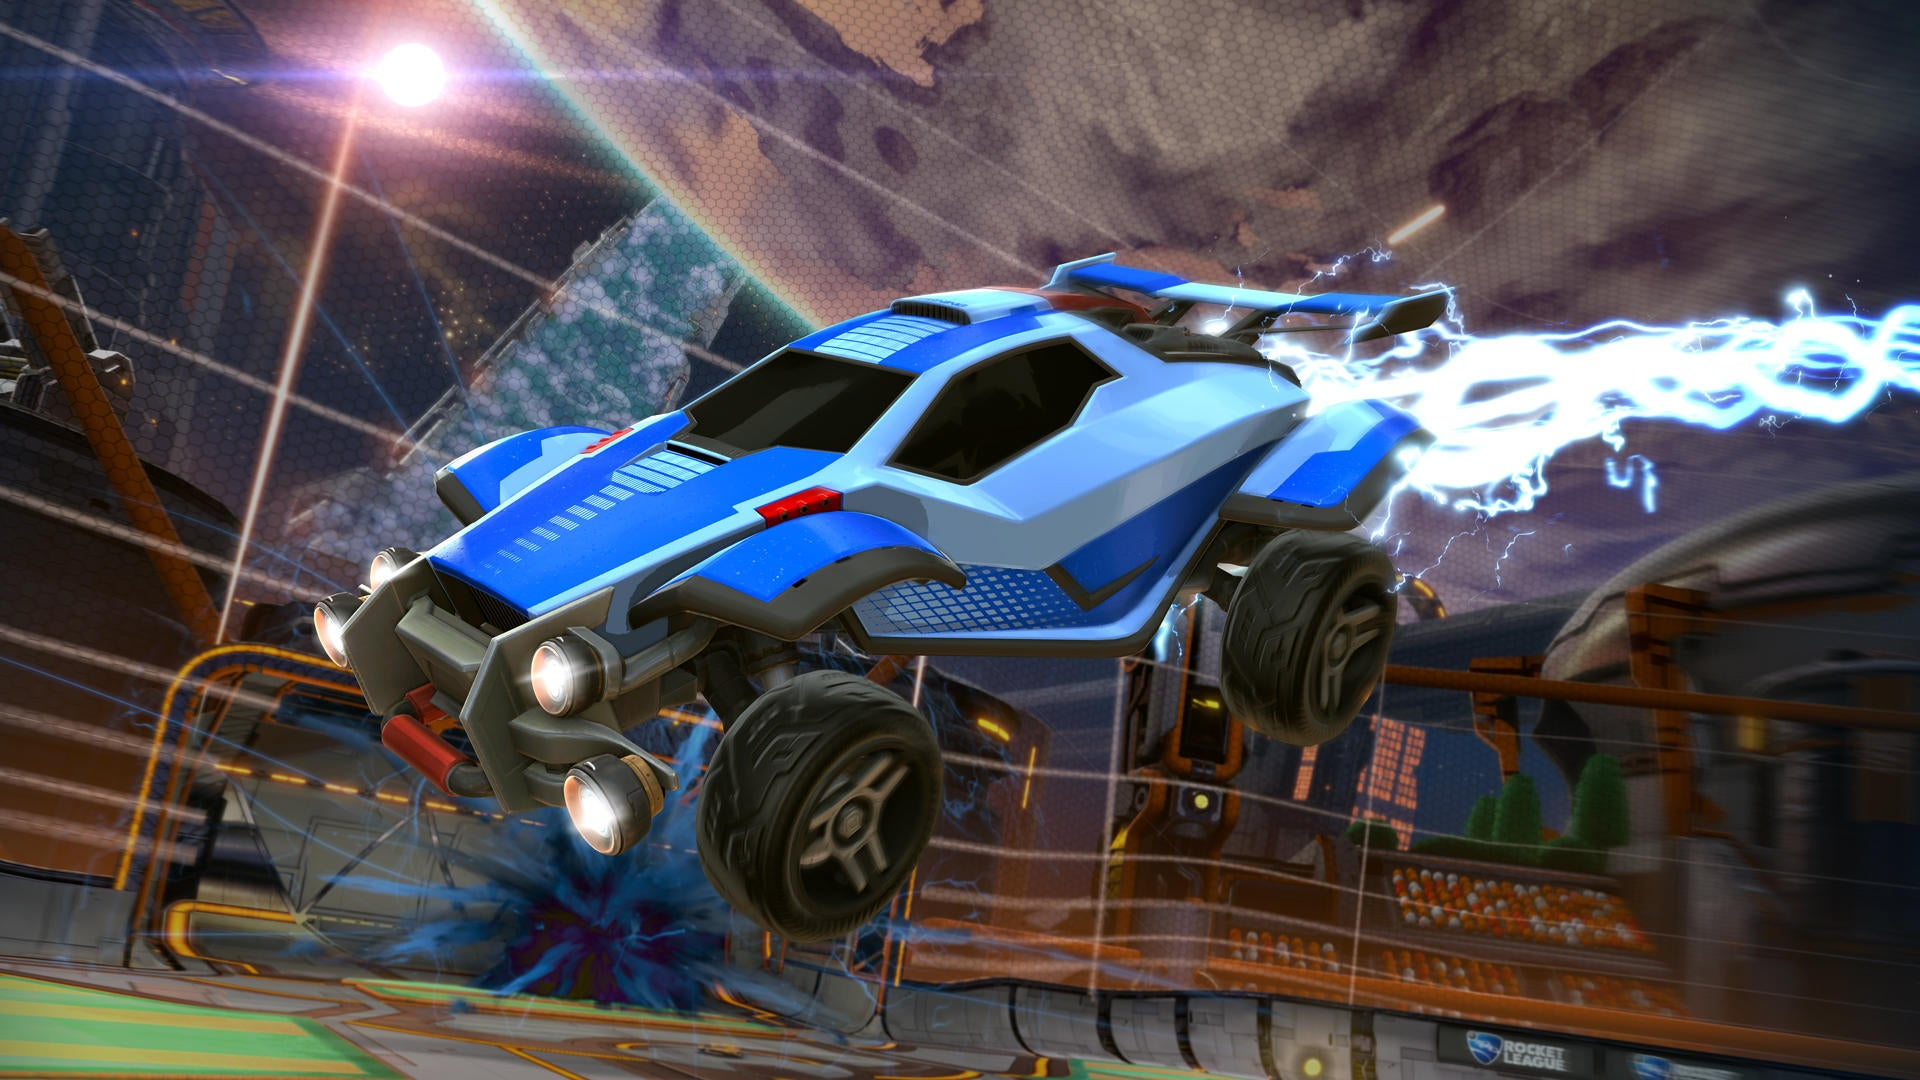 PS4 Pro Support Coming To Rocket League Image